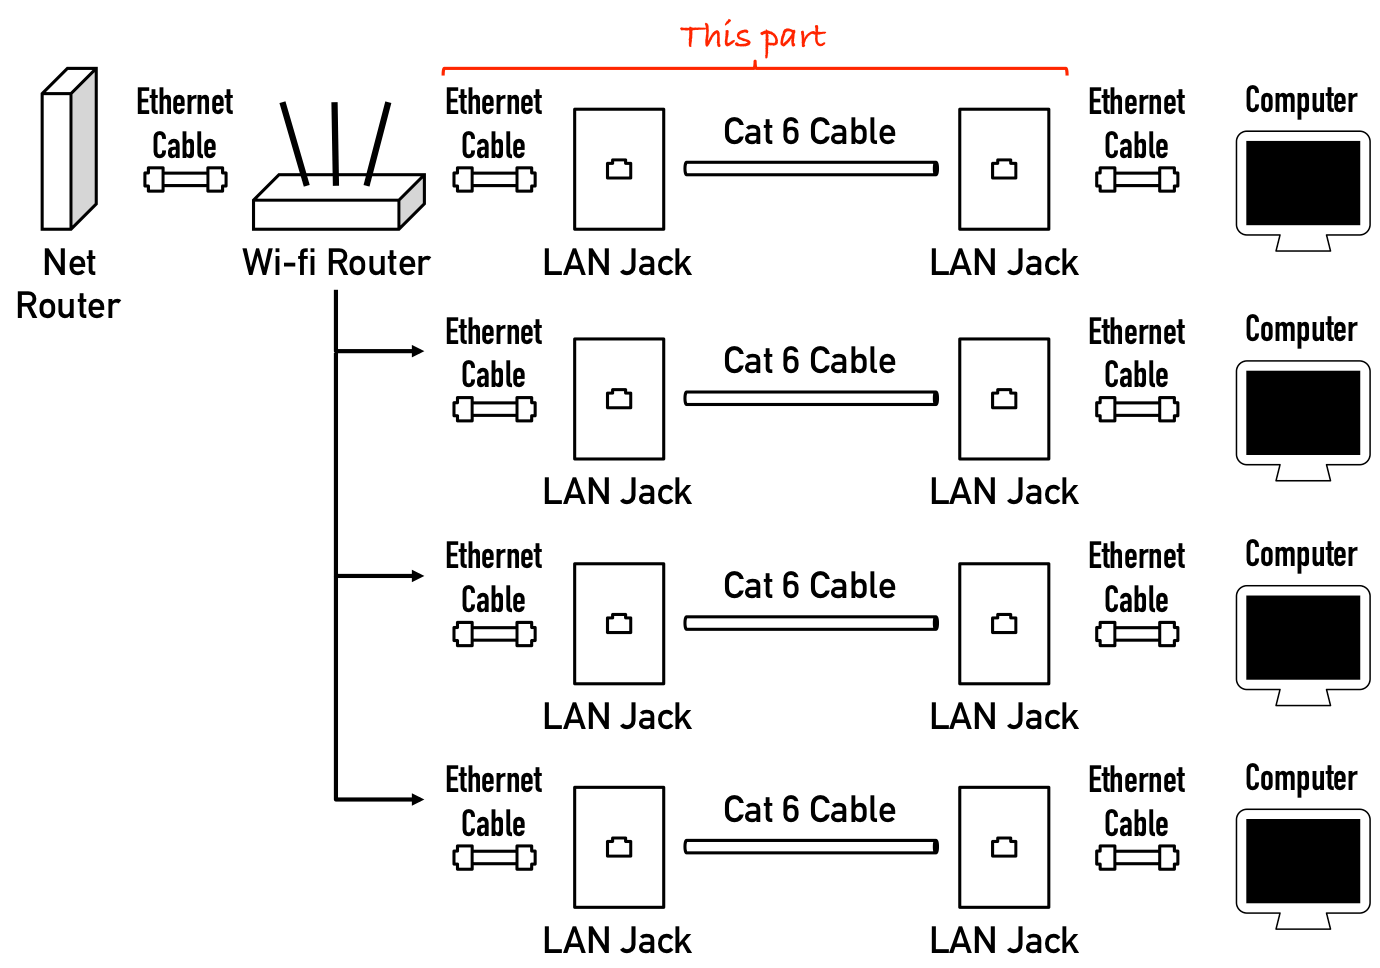 Wireles Internet Cable Connection Diagram - google wifi update ... on cable design diagram, cable connection diagram, low voltage diagram, cable splitter diagram, cable tv hookup diagram, cross cable diagram, cable transmission diagram, cat cable diagram, cable installation diagram, audio cable diagram, cable block diagram, cable pinout diagram, cable harness diagram, component cable diagram, cable assembly diagram, cable schematic diagram, cable modem hookup diagram, cable connectors diagram, ethernet cable diagram, cable internet setup,